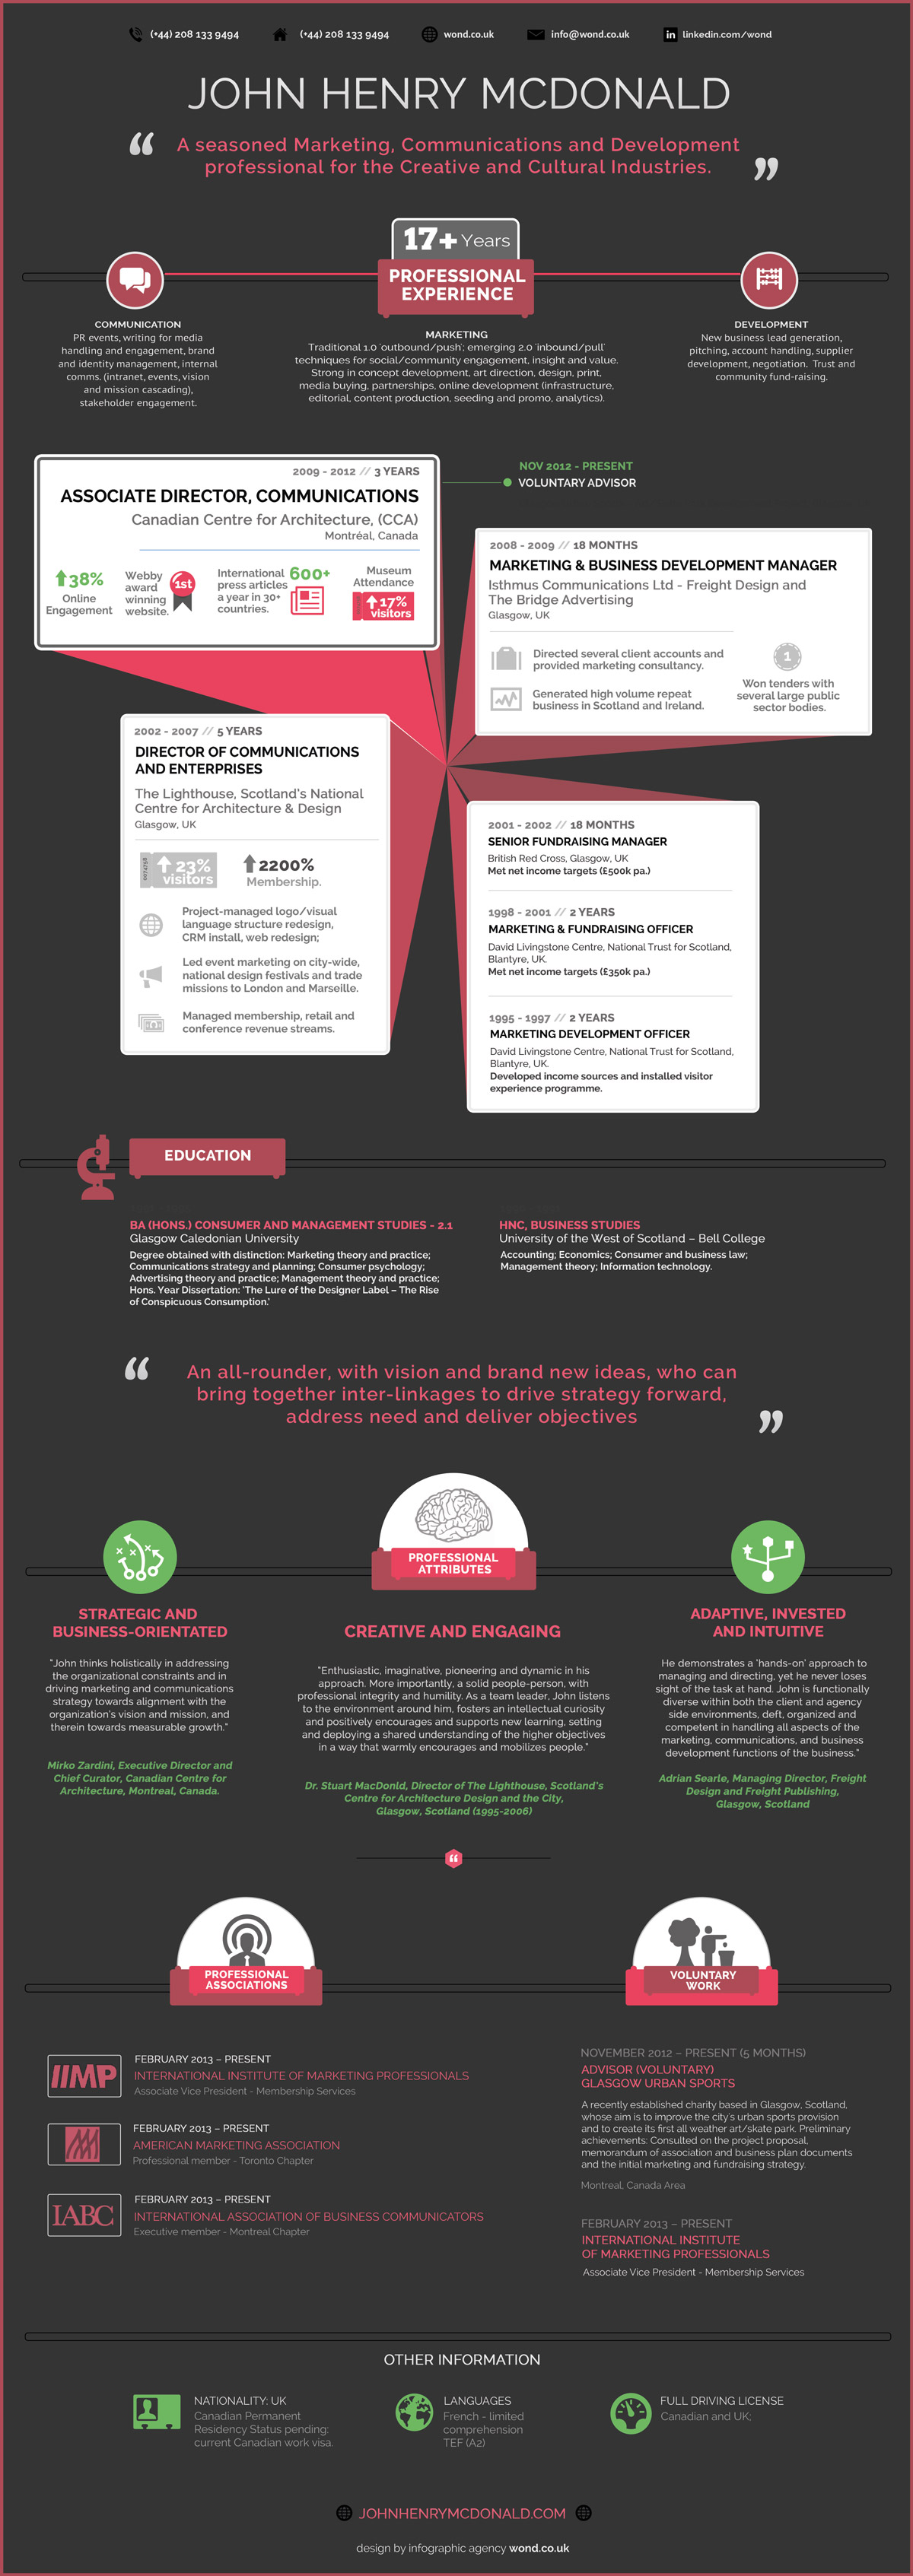 17 Infographic Resume Templates Free Download - softwaremonster.info